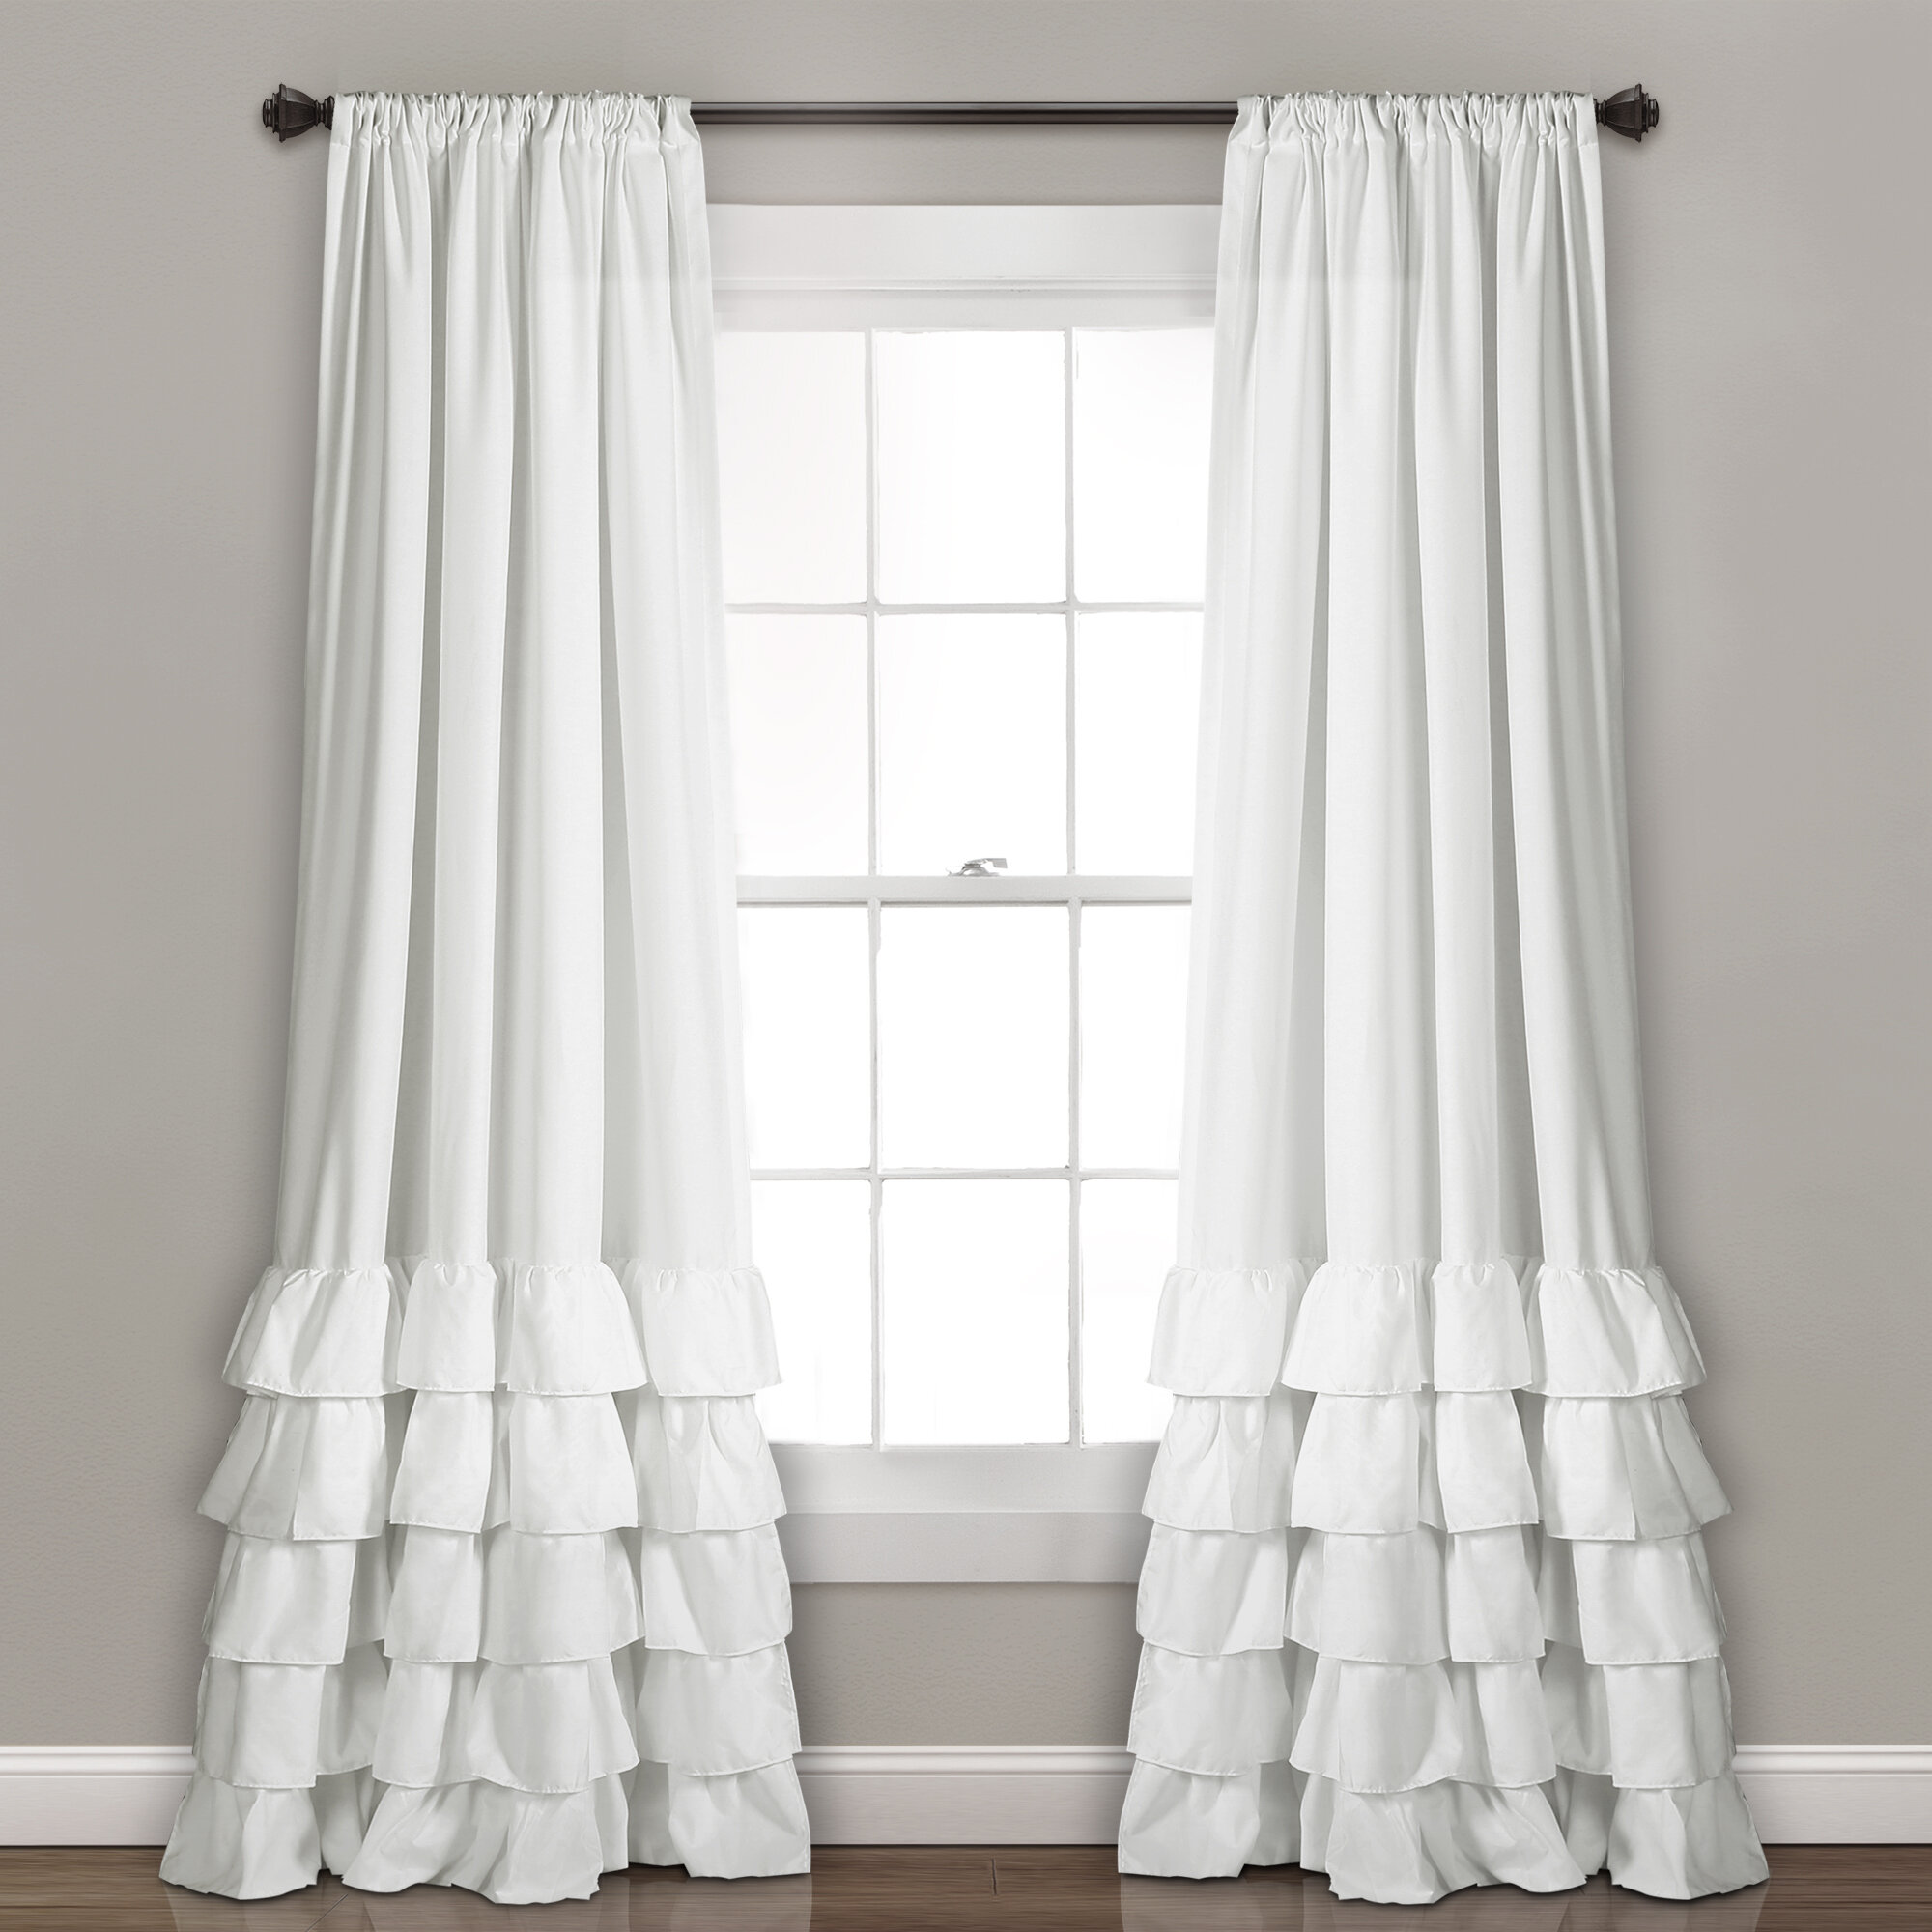 panel curtain white w vertical tie ruffles unlined silk curtains ruffle amazon pin x top faux window com l bed